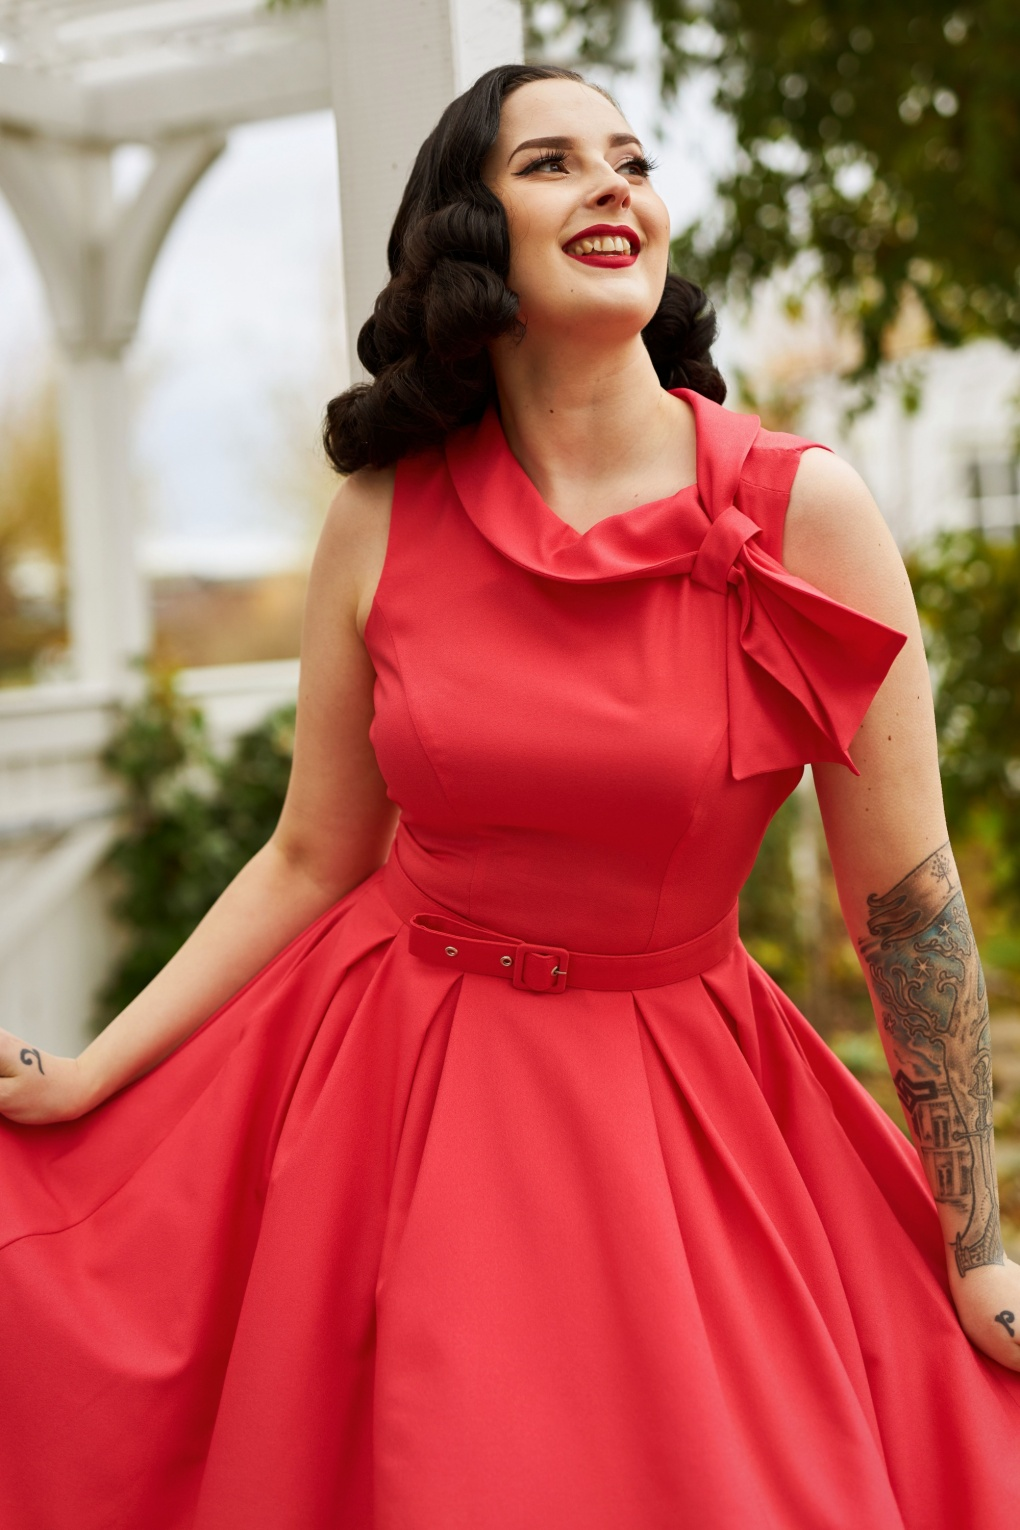 1950s Dresses, 50s Dresses | 1950s Style Dresses 50s Thelise Swing Dress in Coral Pink £106.43 AT vintagedancer.com